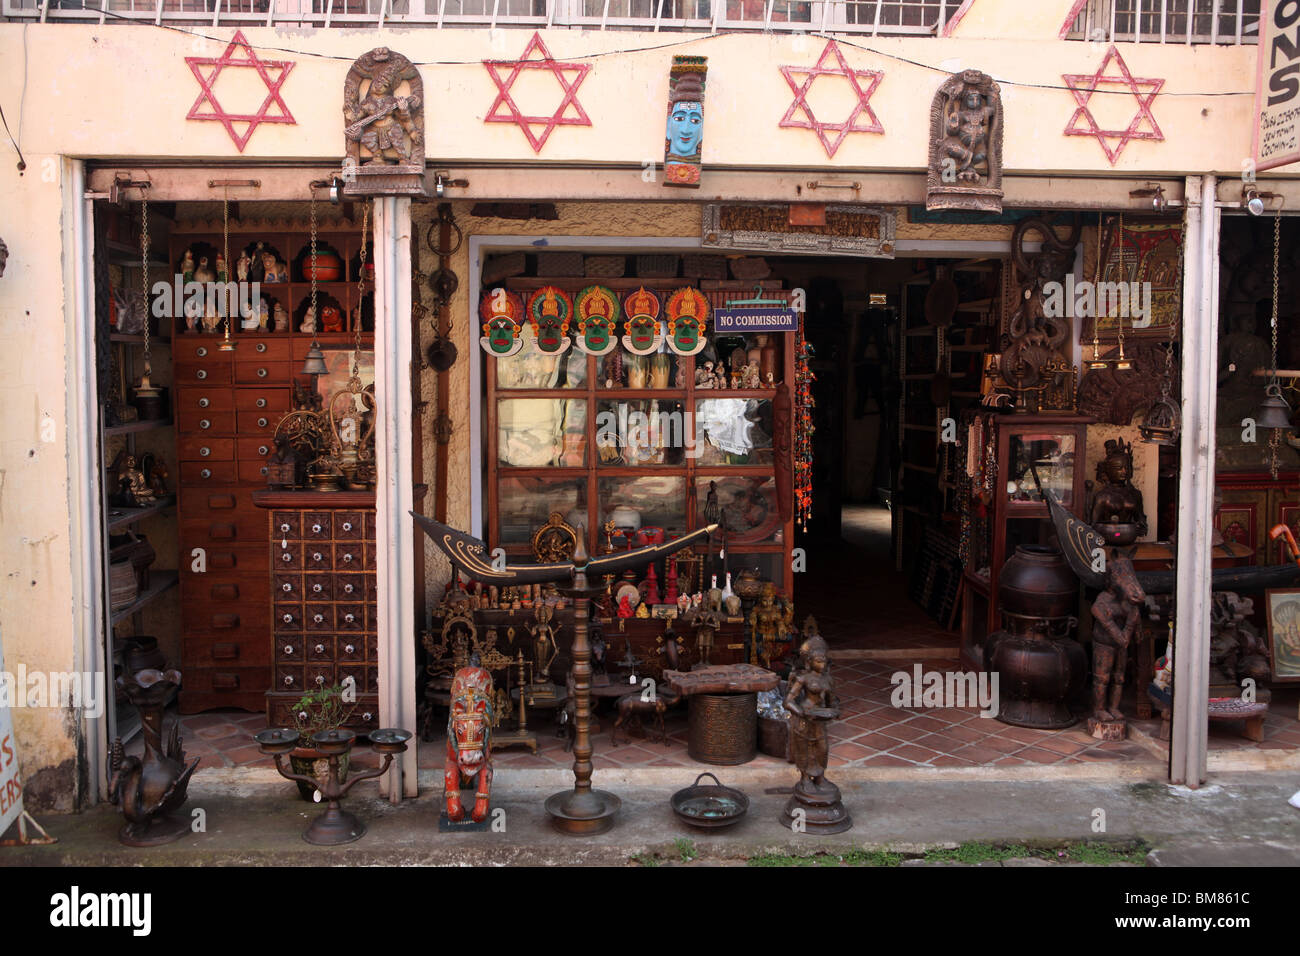 An Antique Shop In Showing The Star Of David Above The Shop In